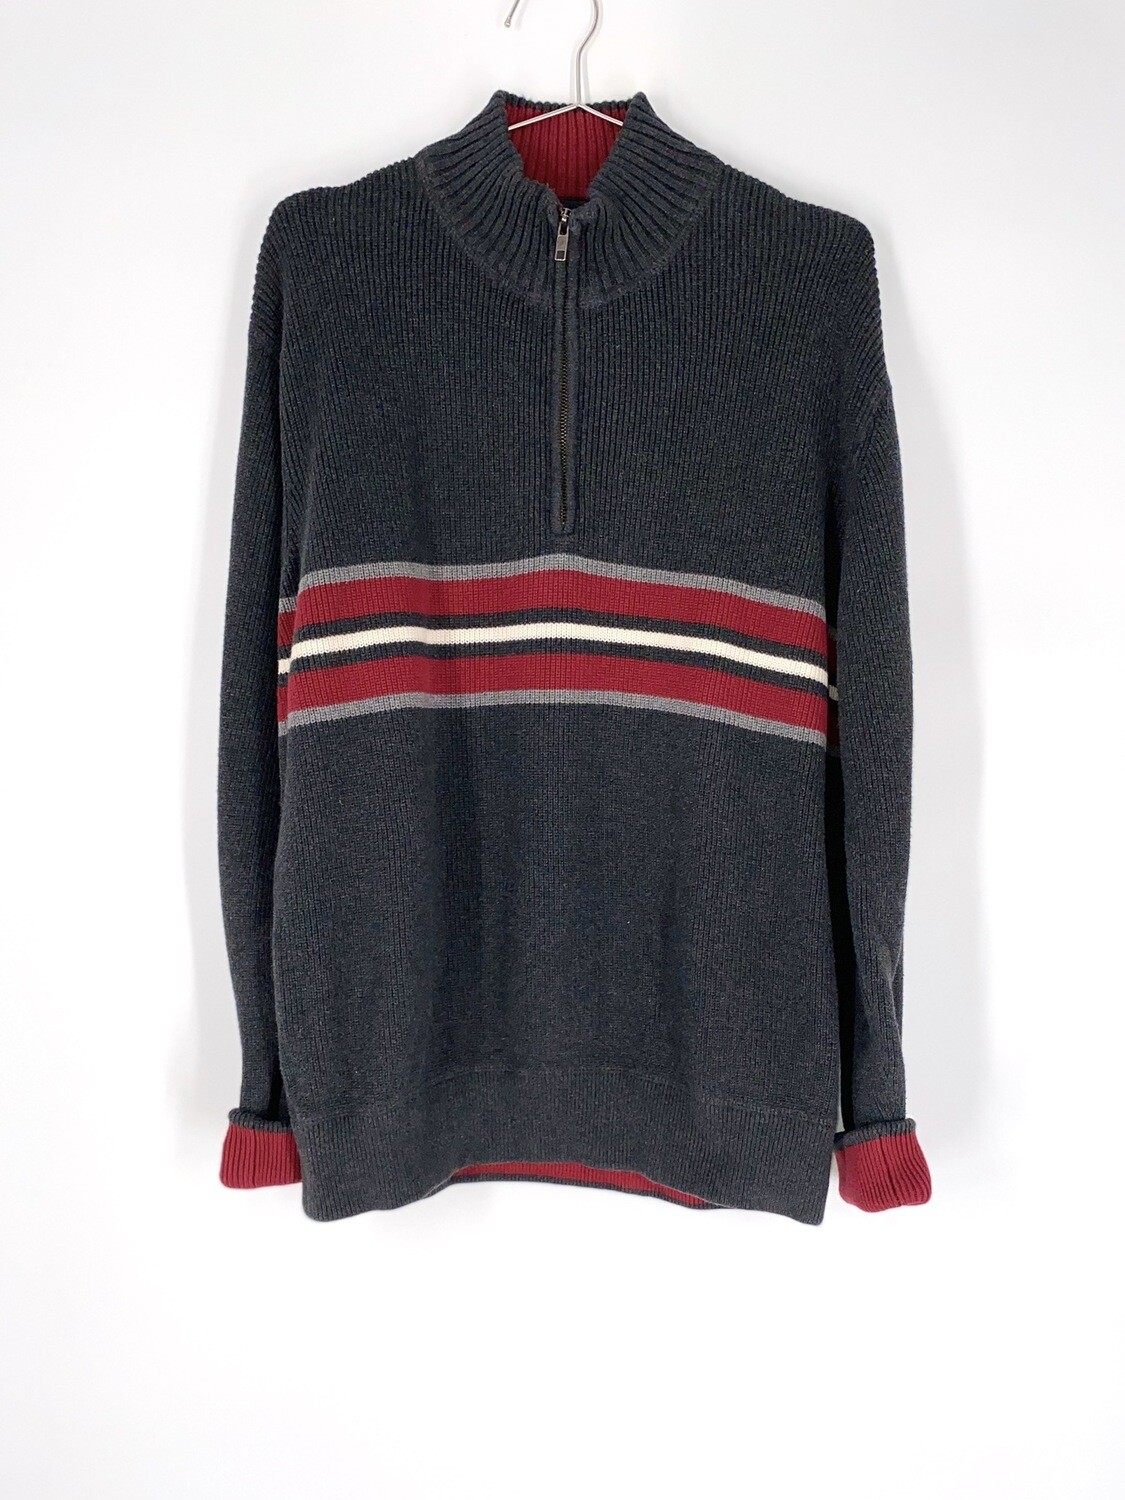 Quarter Zip Grey And Red Sweater Size L